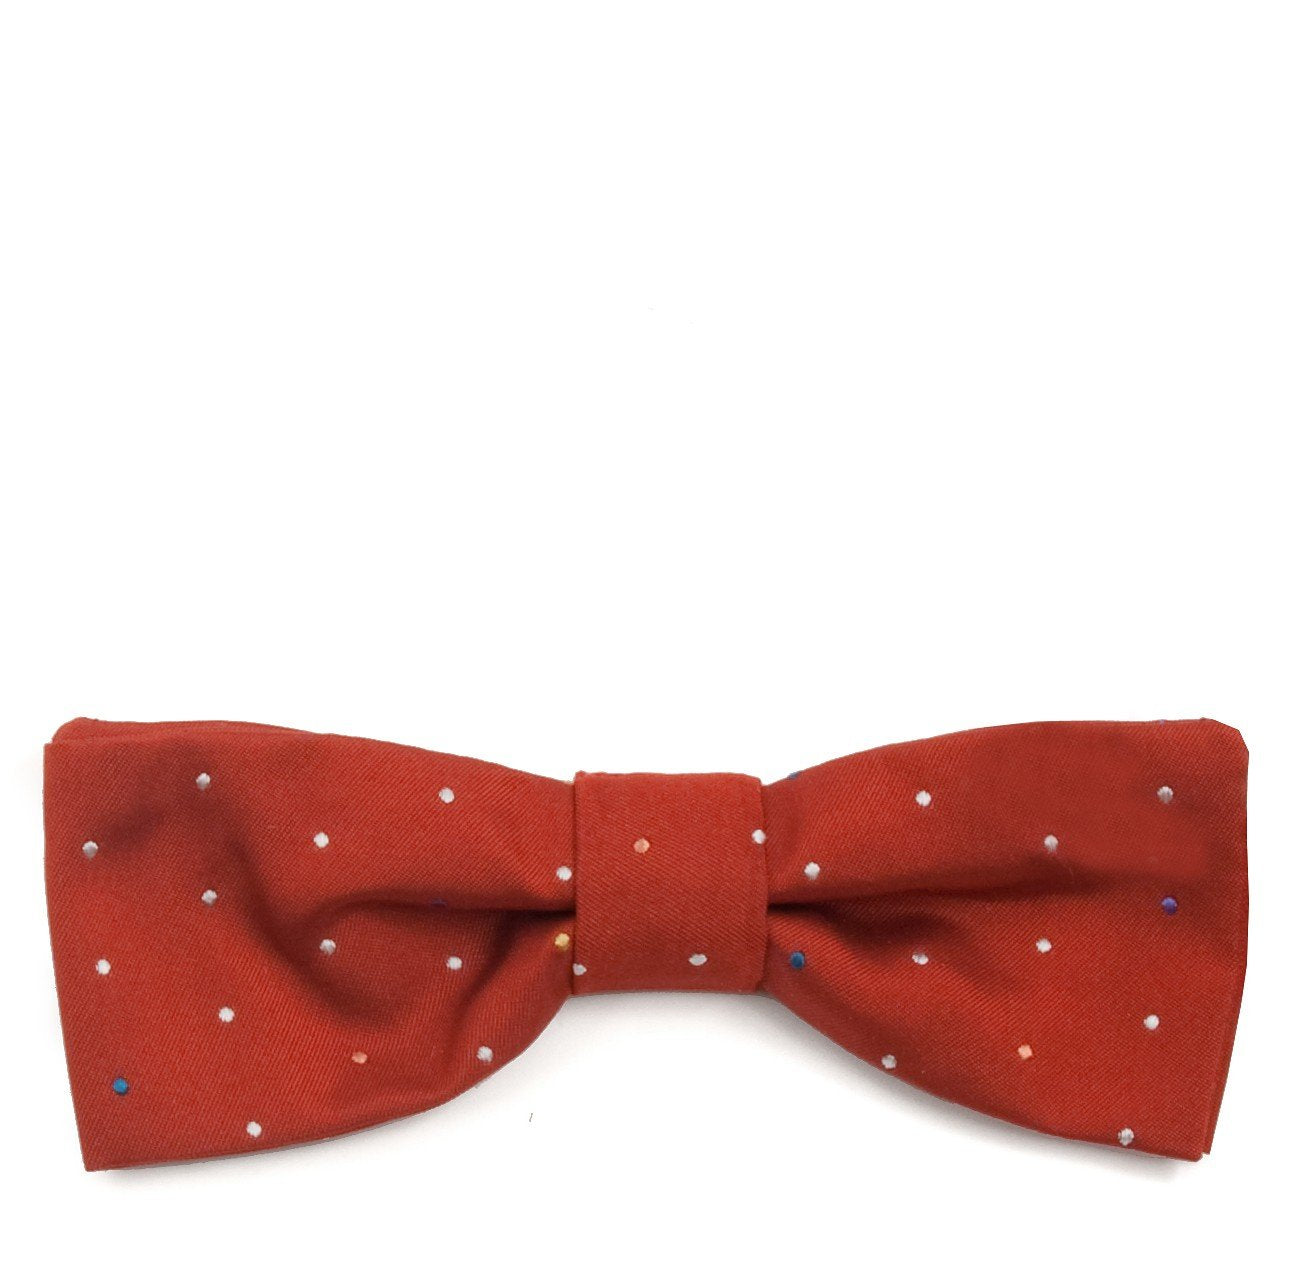 Paul Smith Red Bow Tie